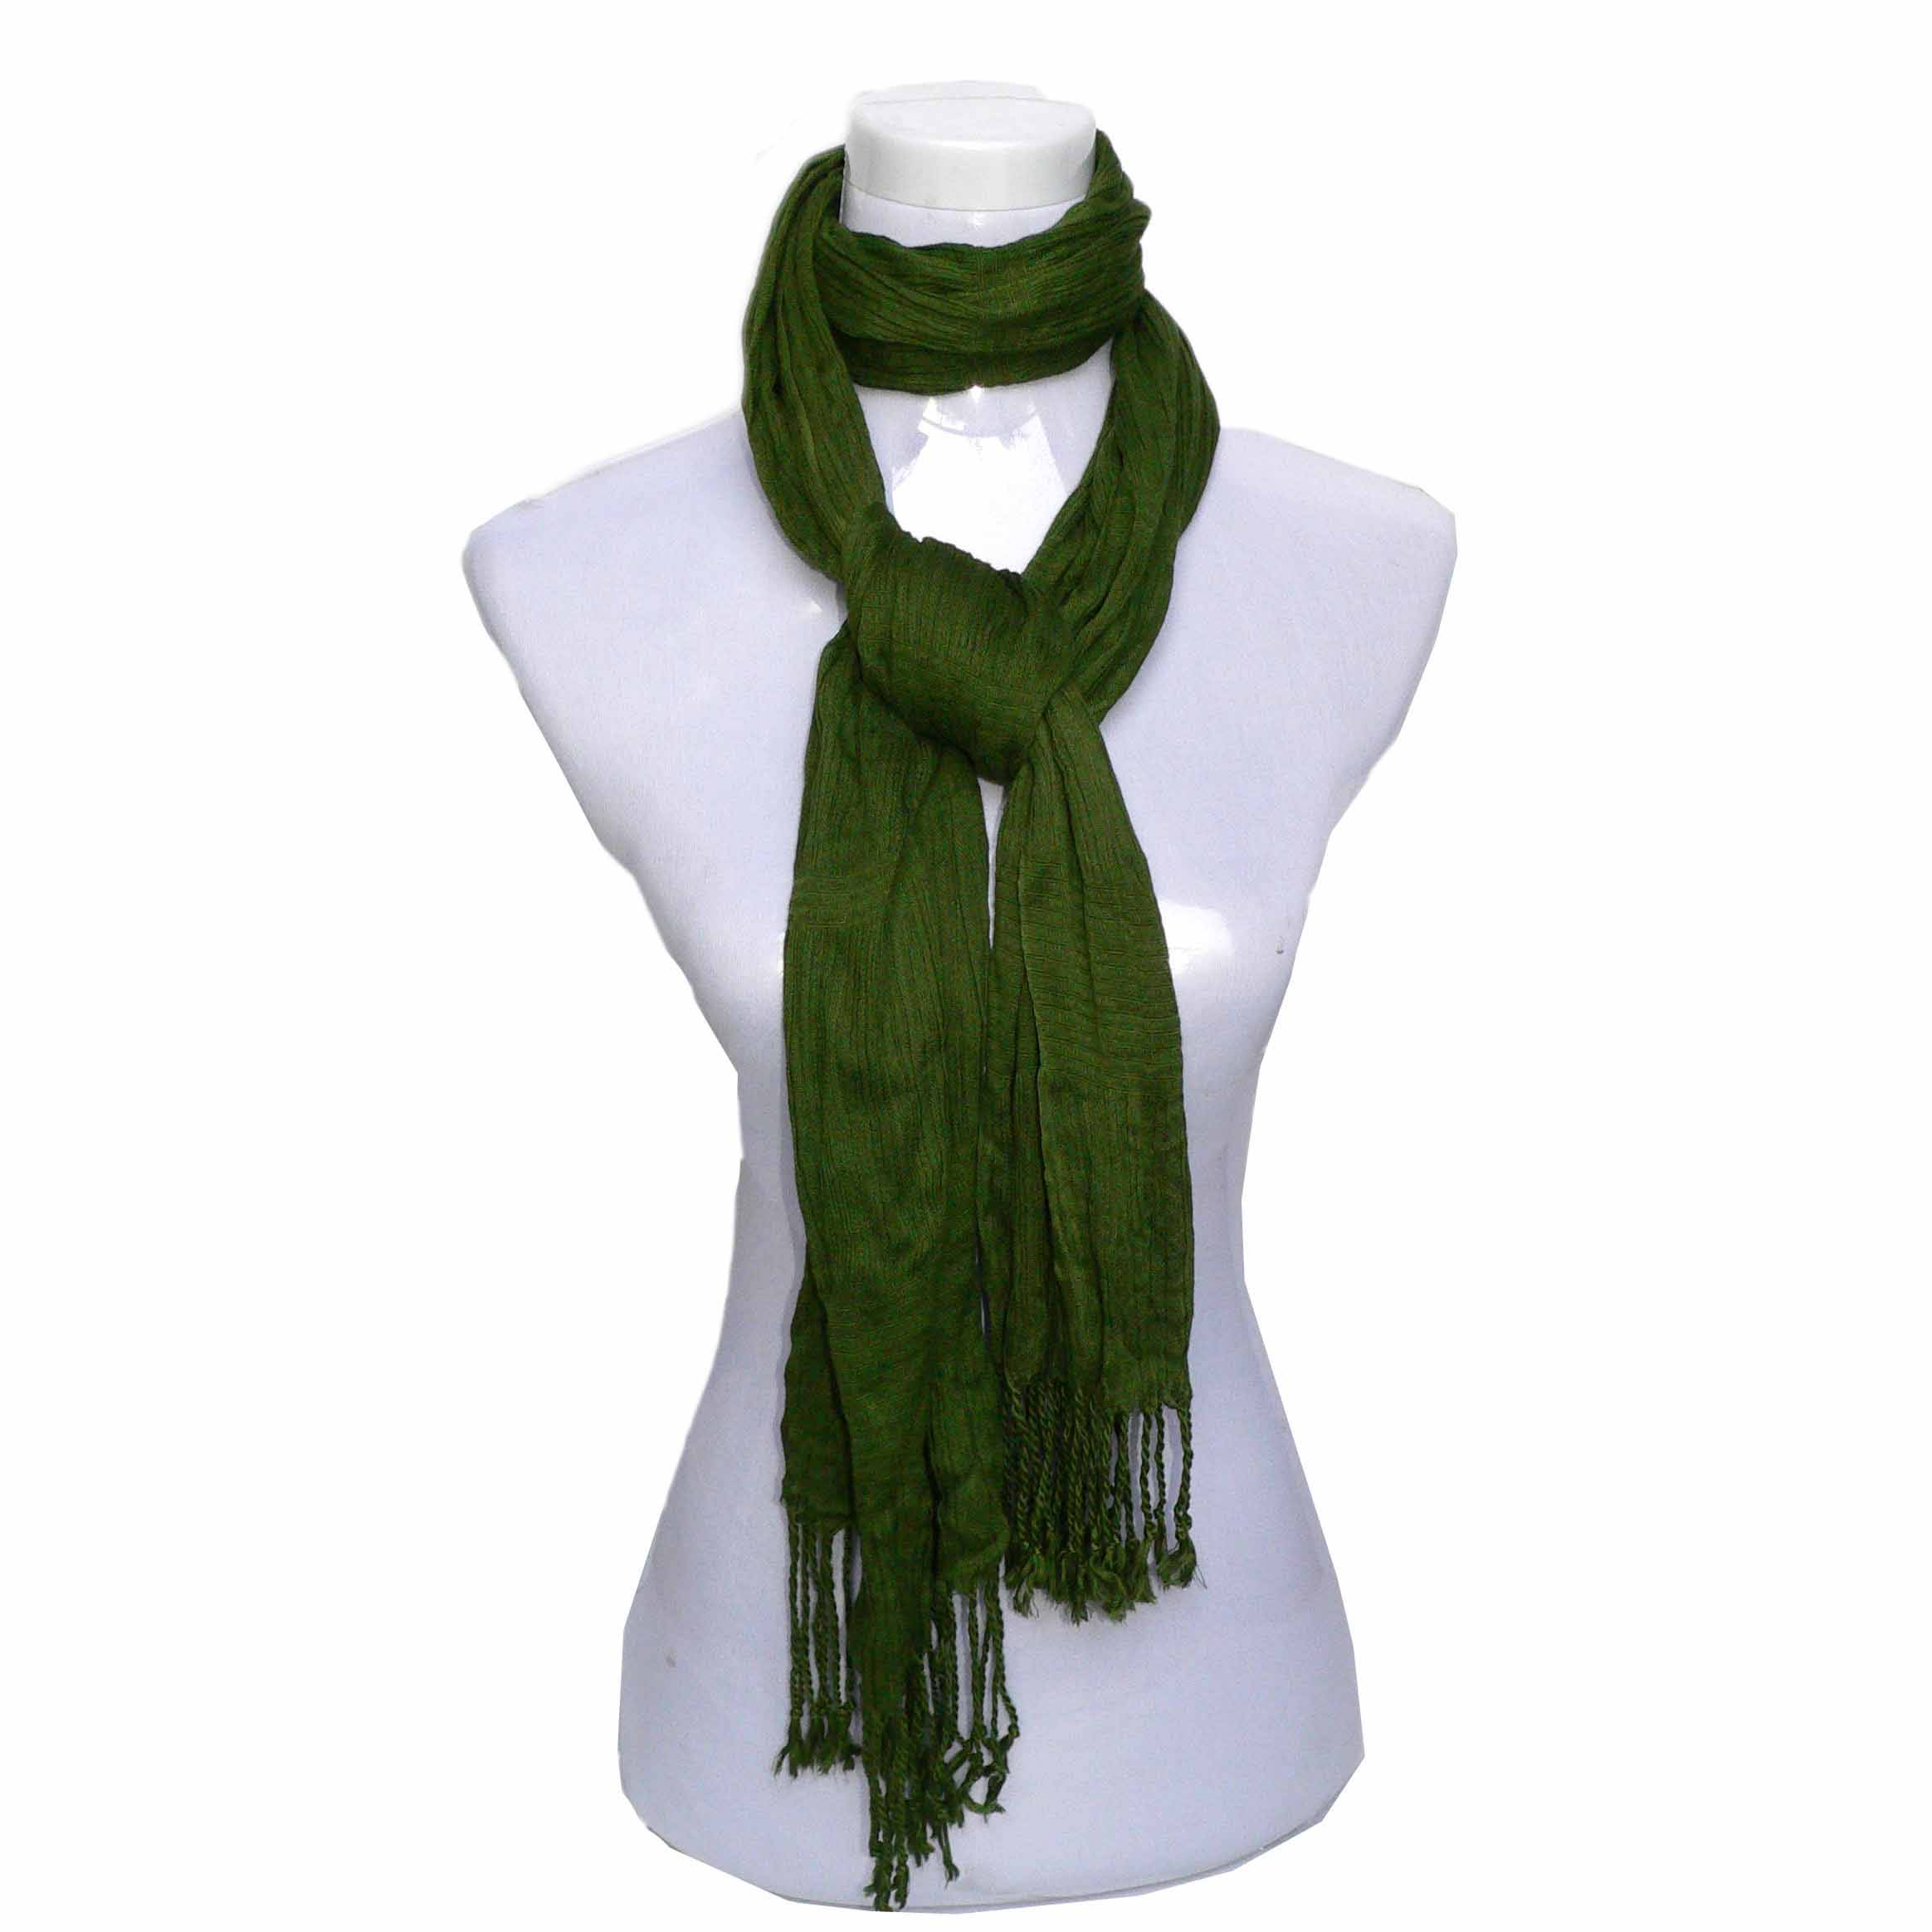 Solid color crinkled scarf